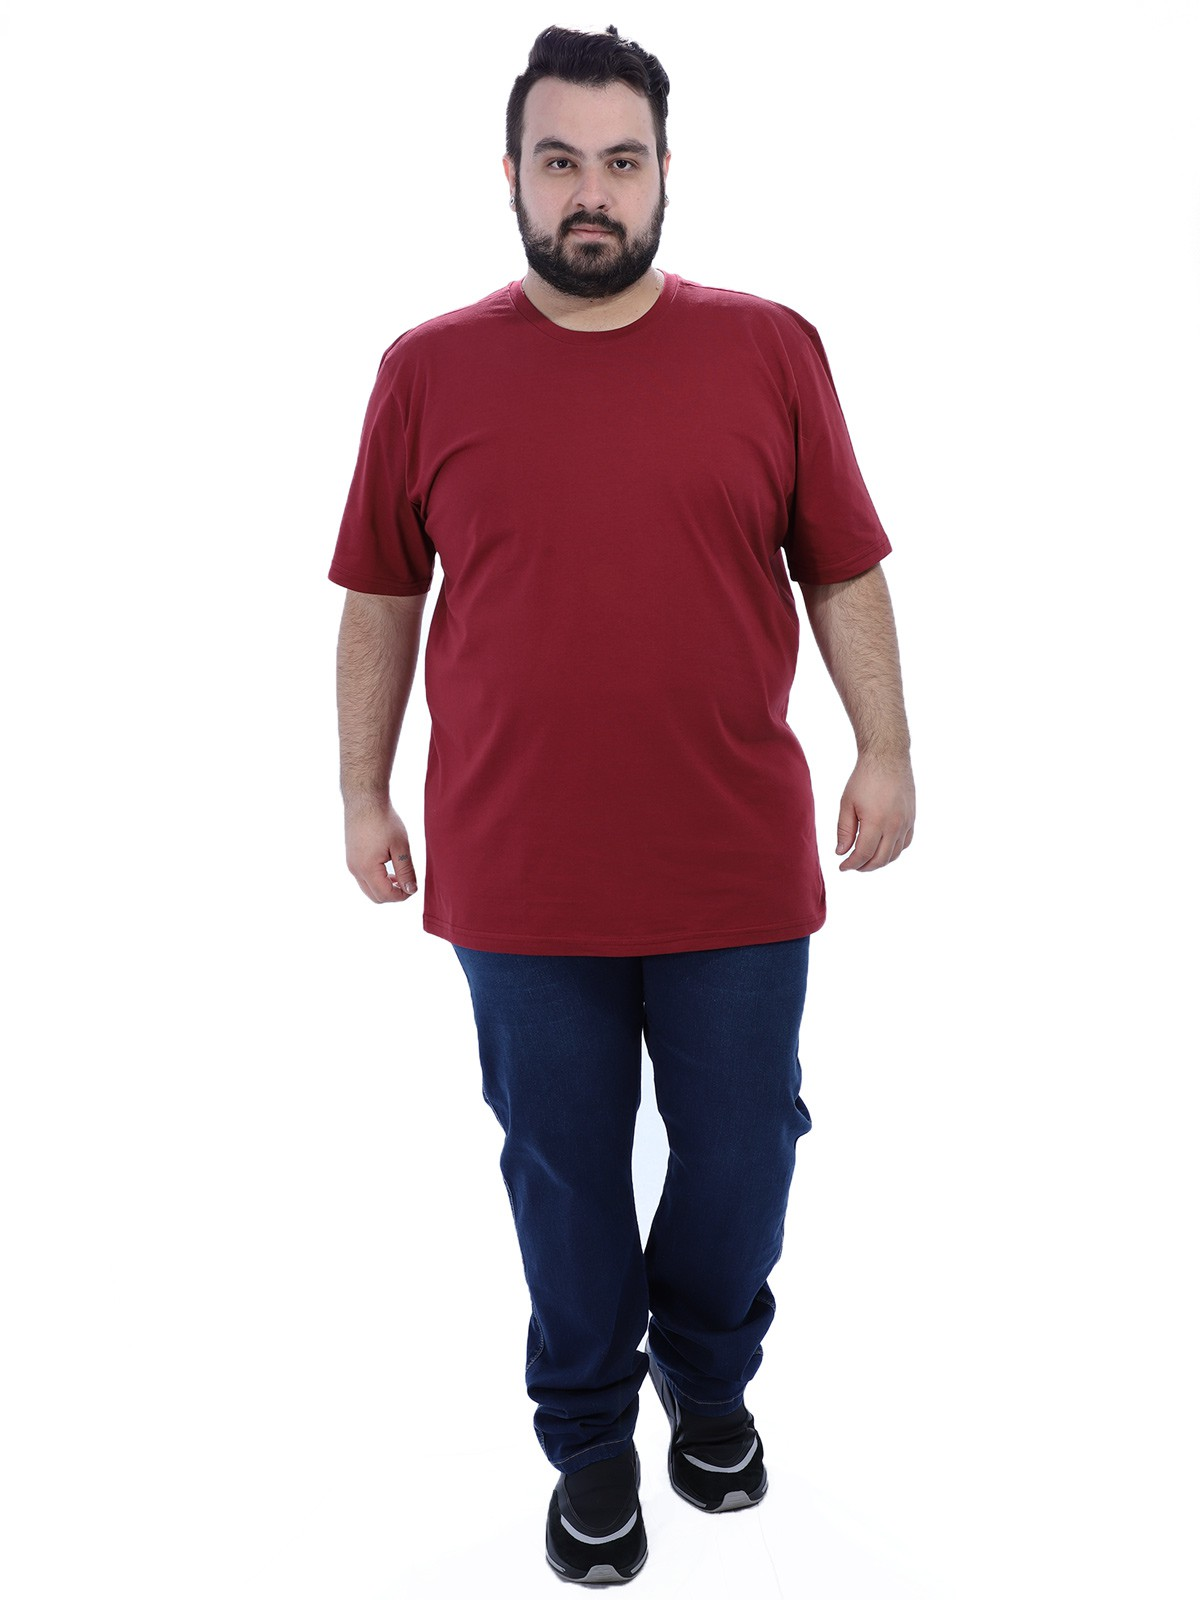 Camiseta Plus Size Masculino Lisa Bordo